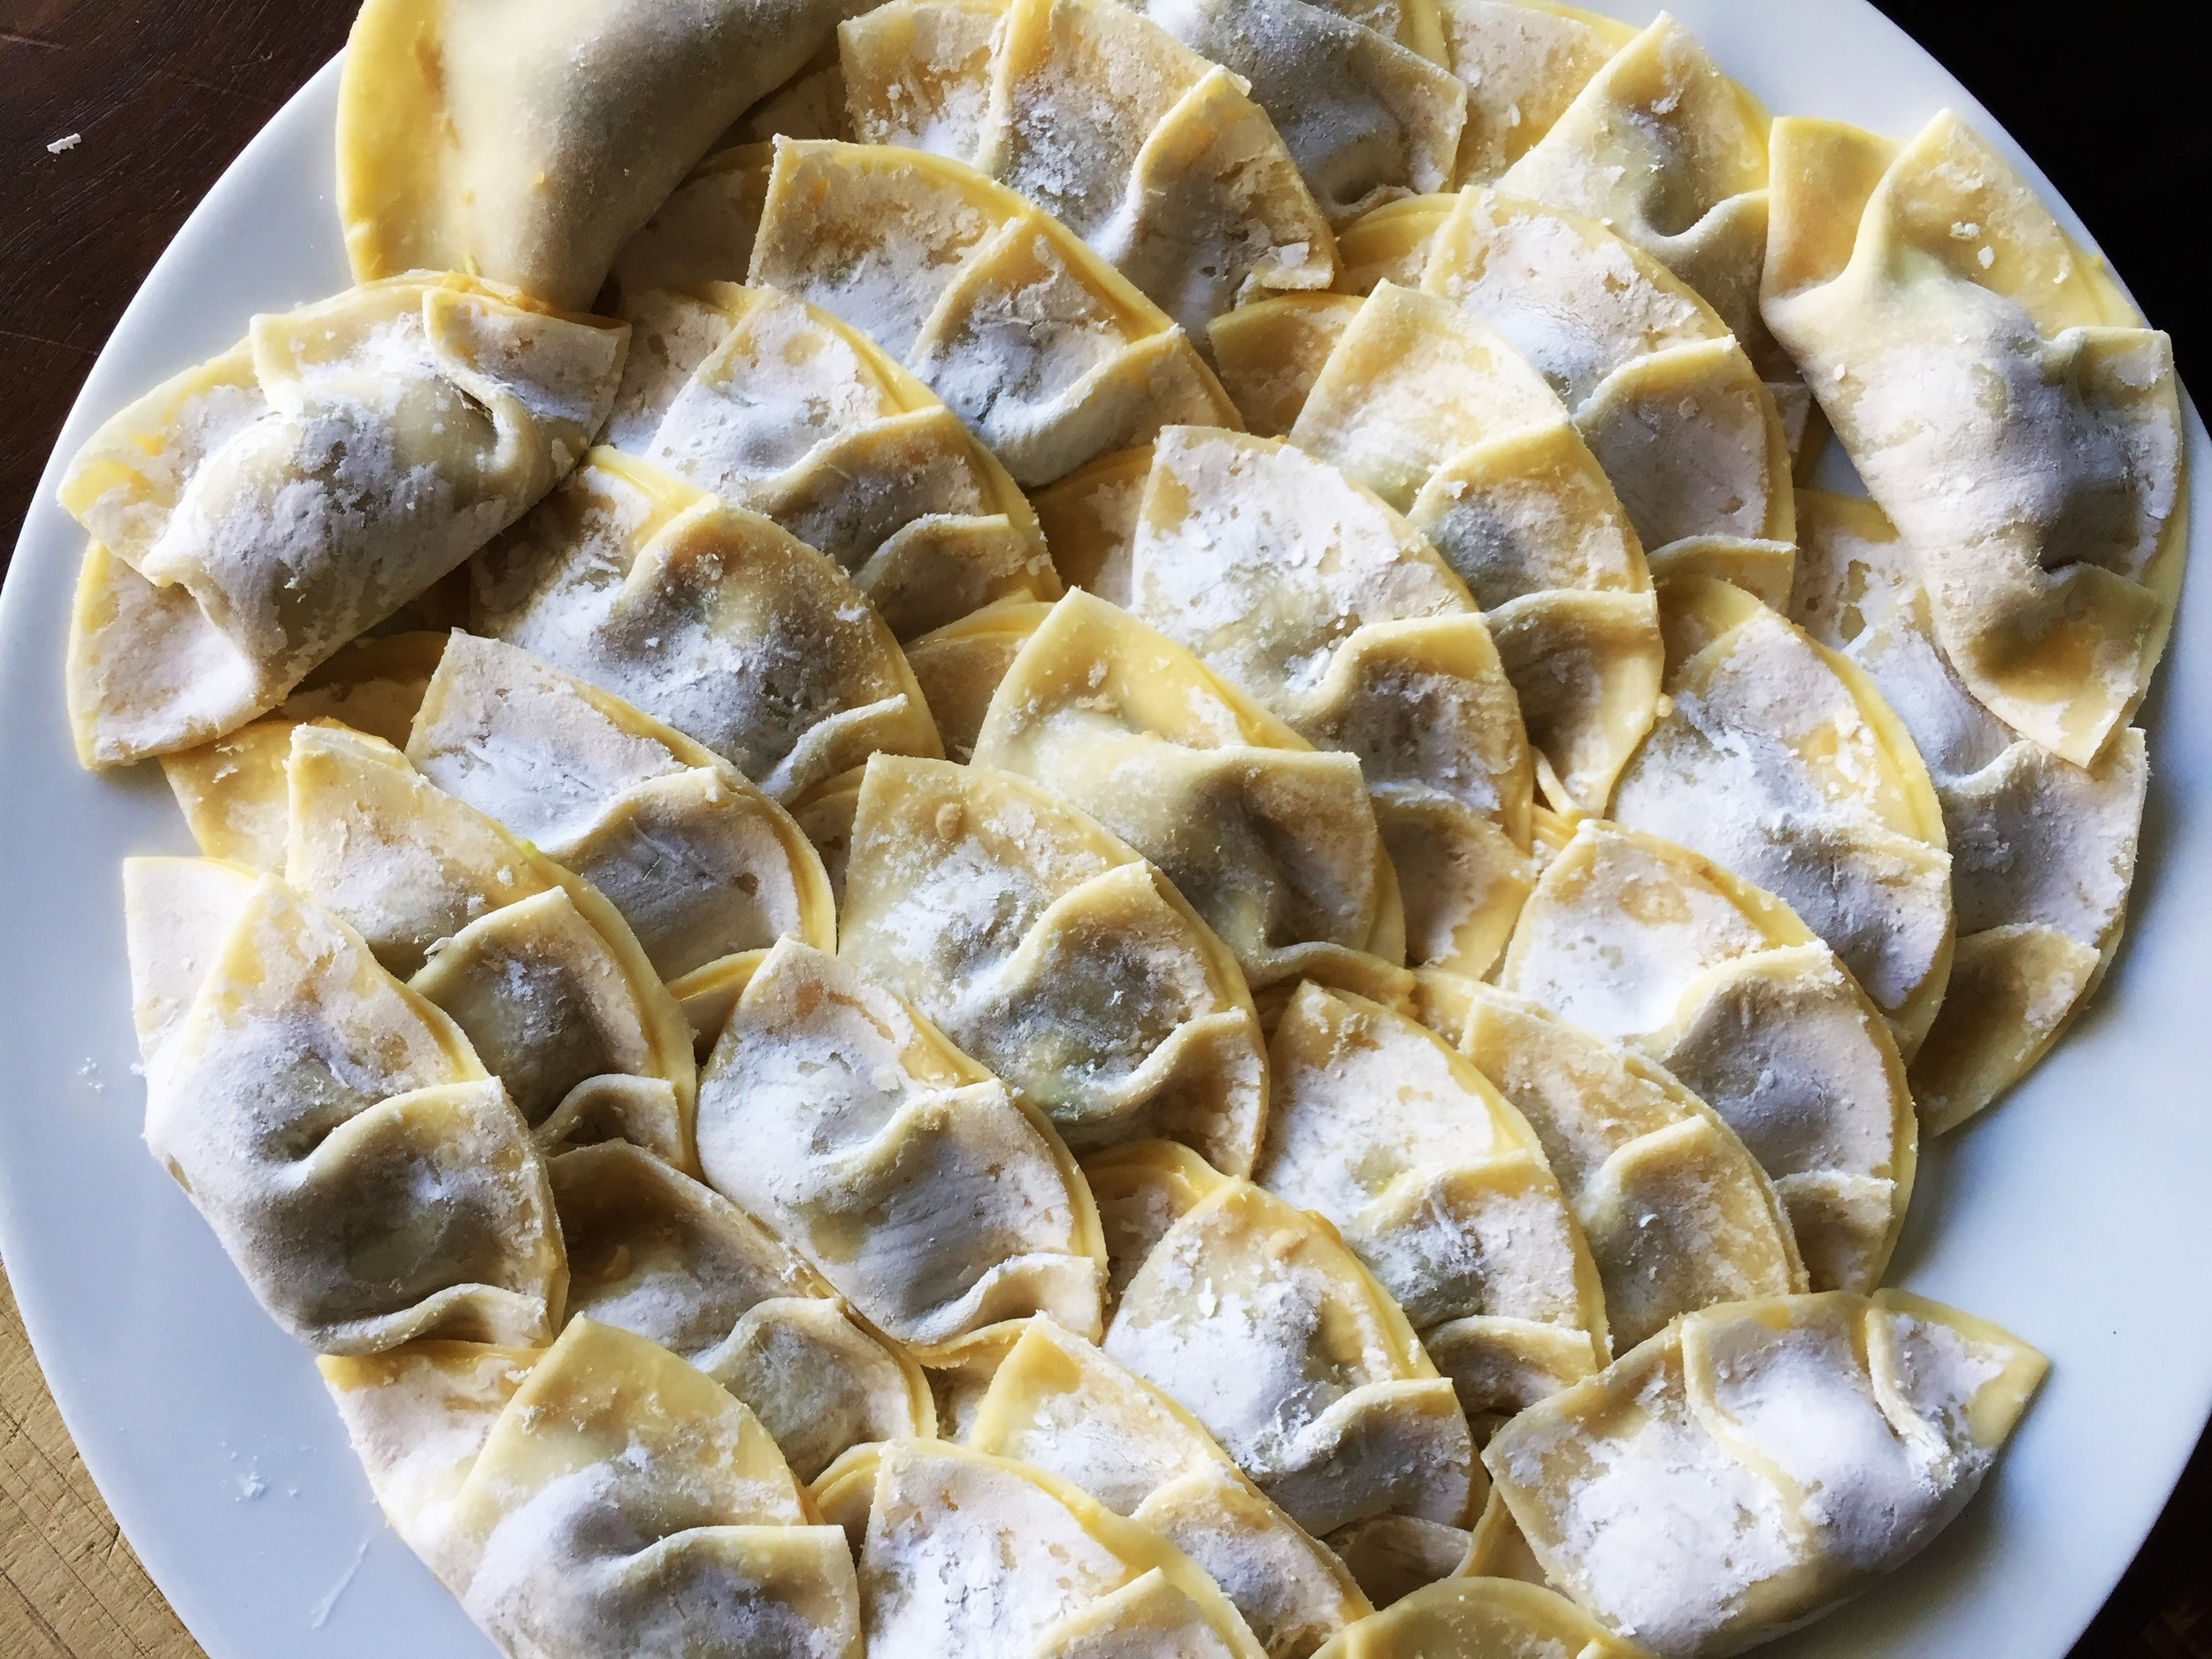 A plate of potstickers, ready for the skillet in the Adventure Kitchen.